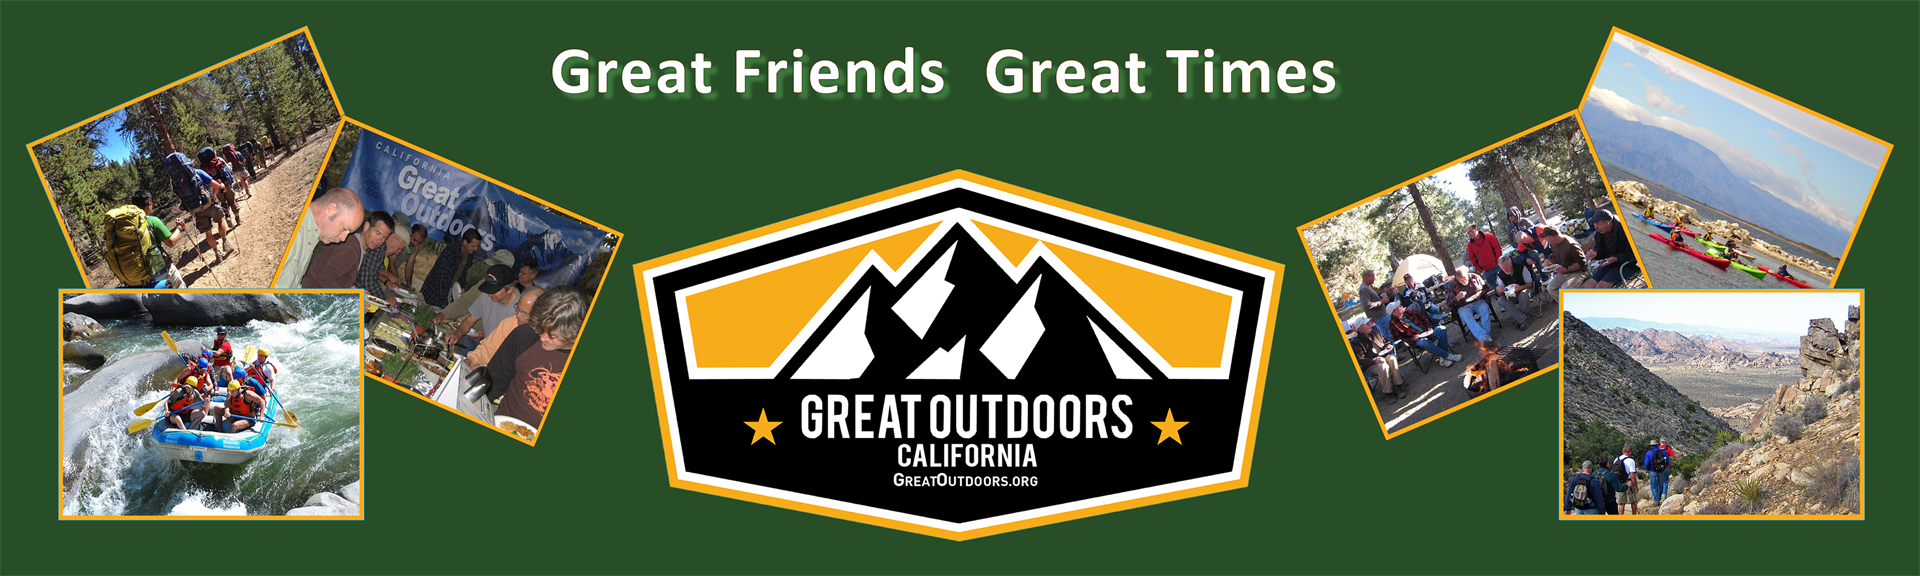 CA Great Outdoors Inc  - PS - Silverwood Lake - Cancelled